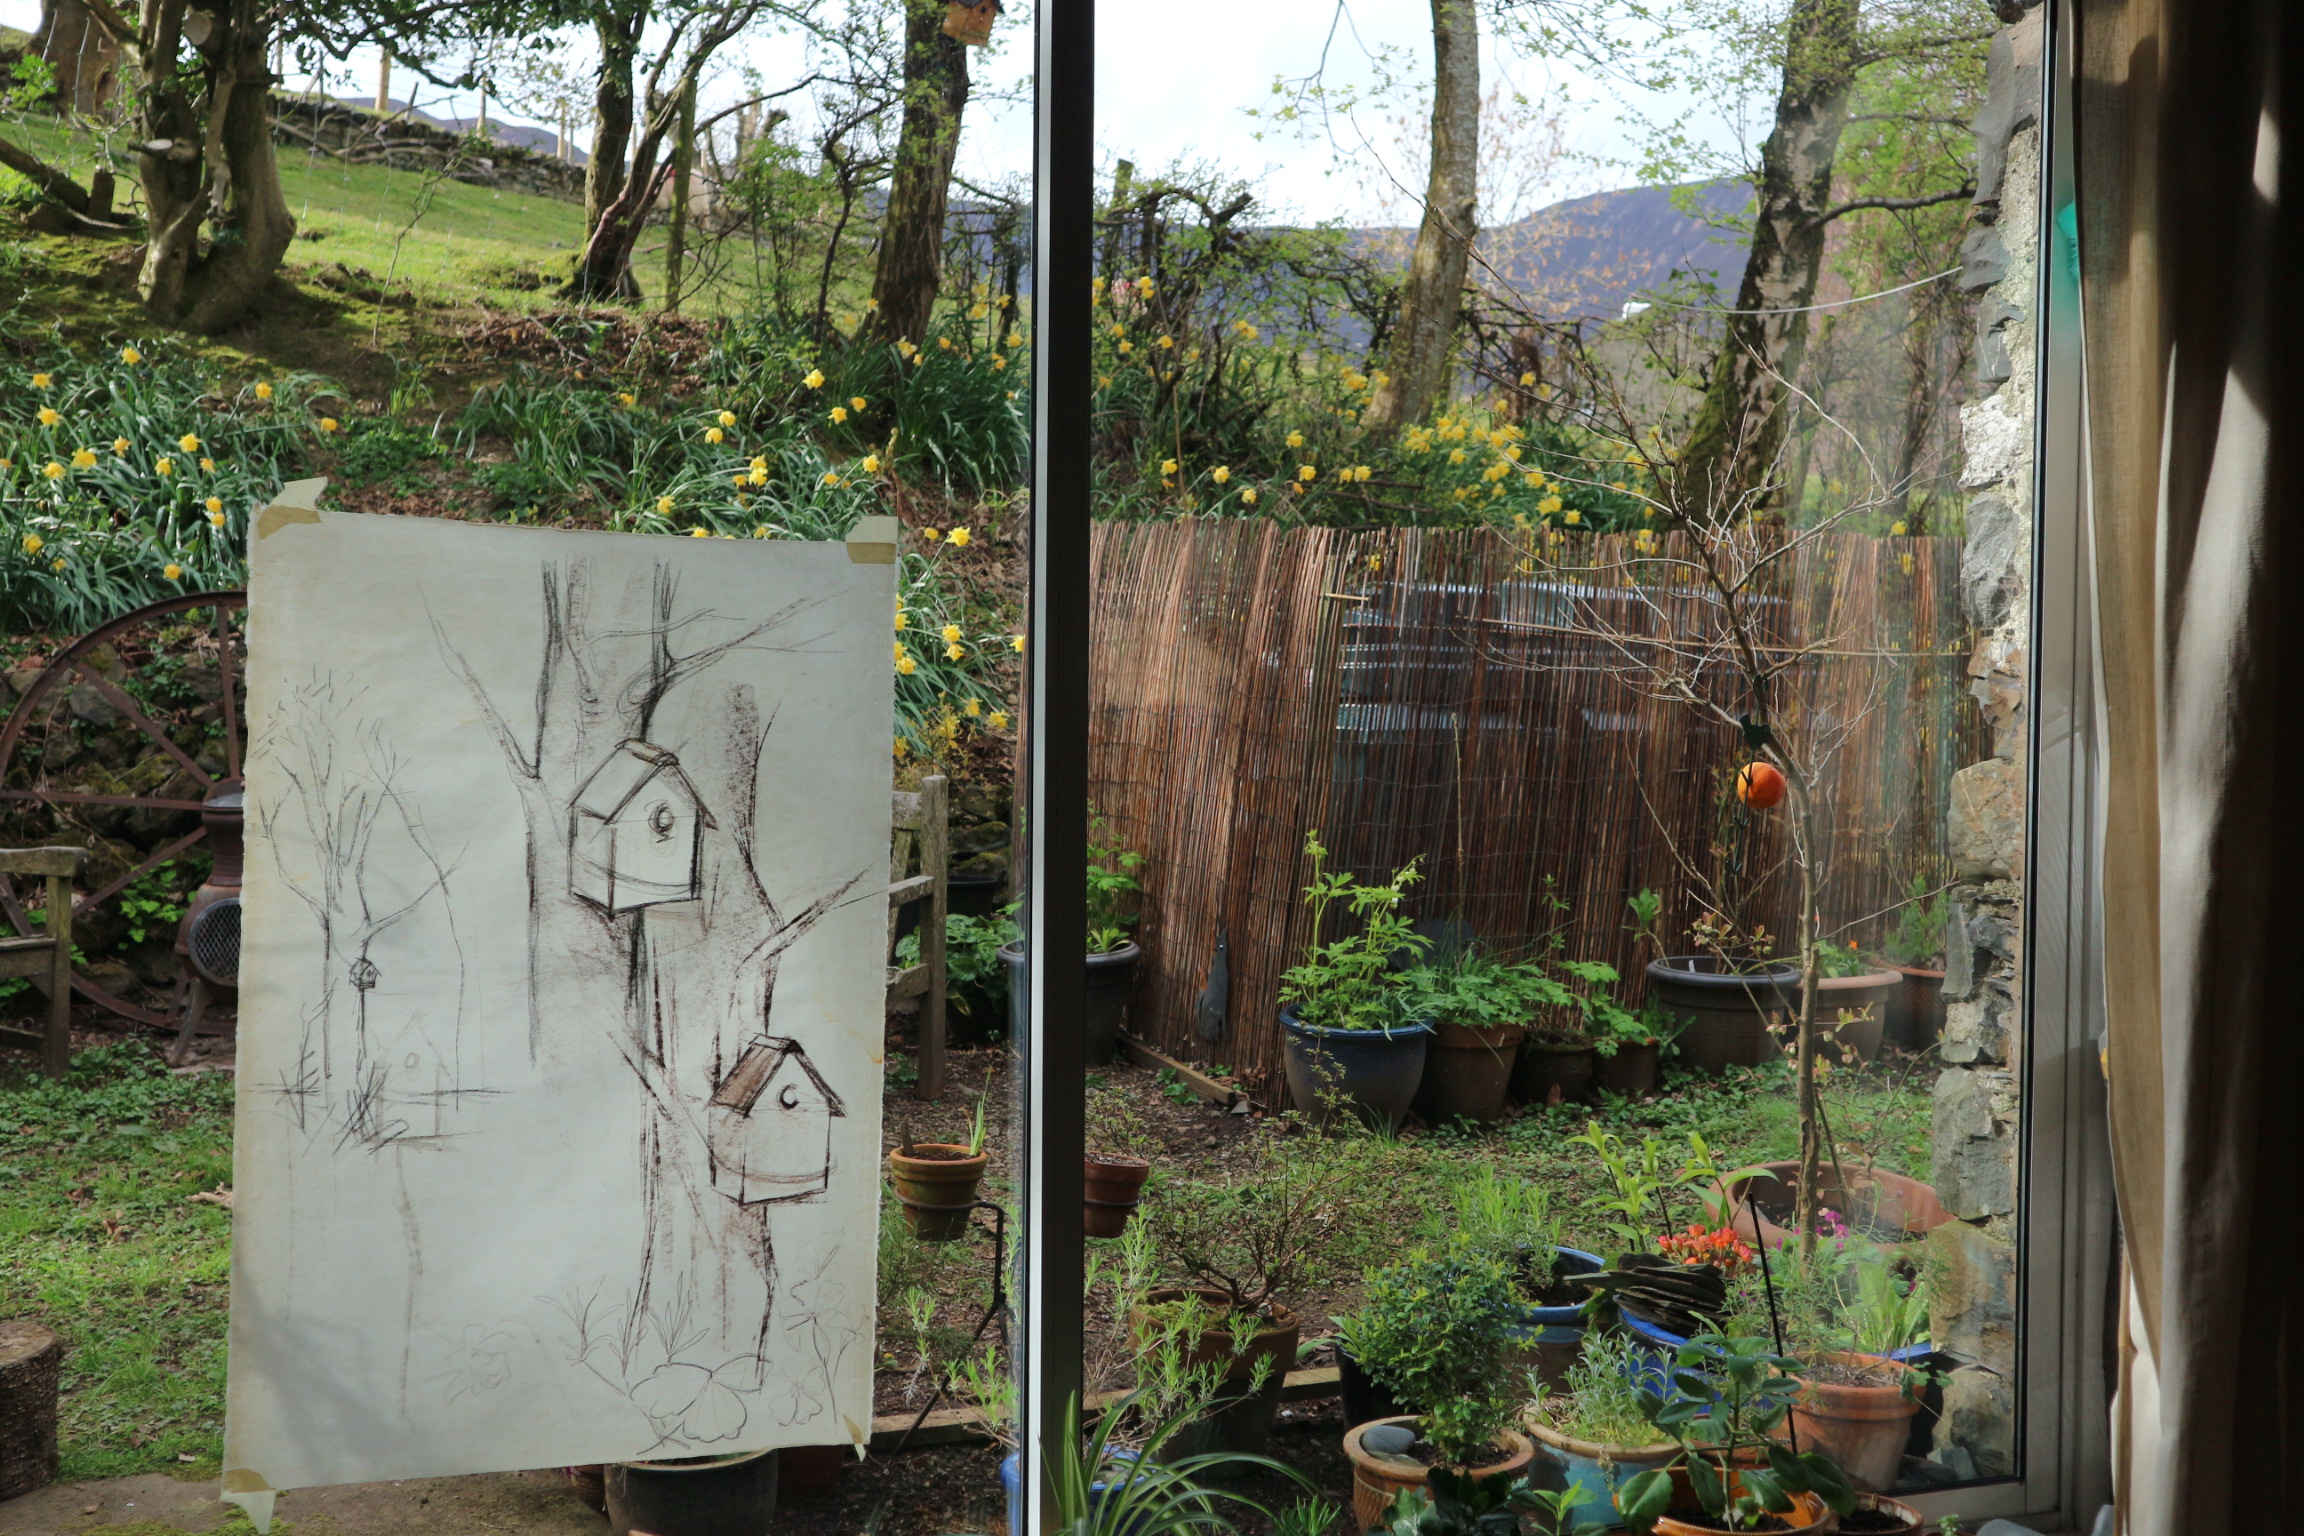 The original drawing...you can just see the bird house!